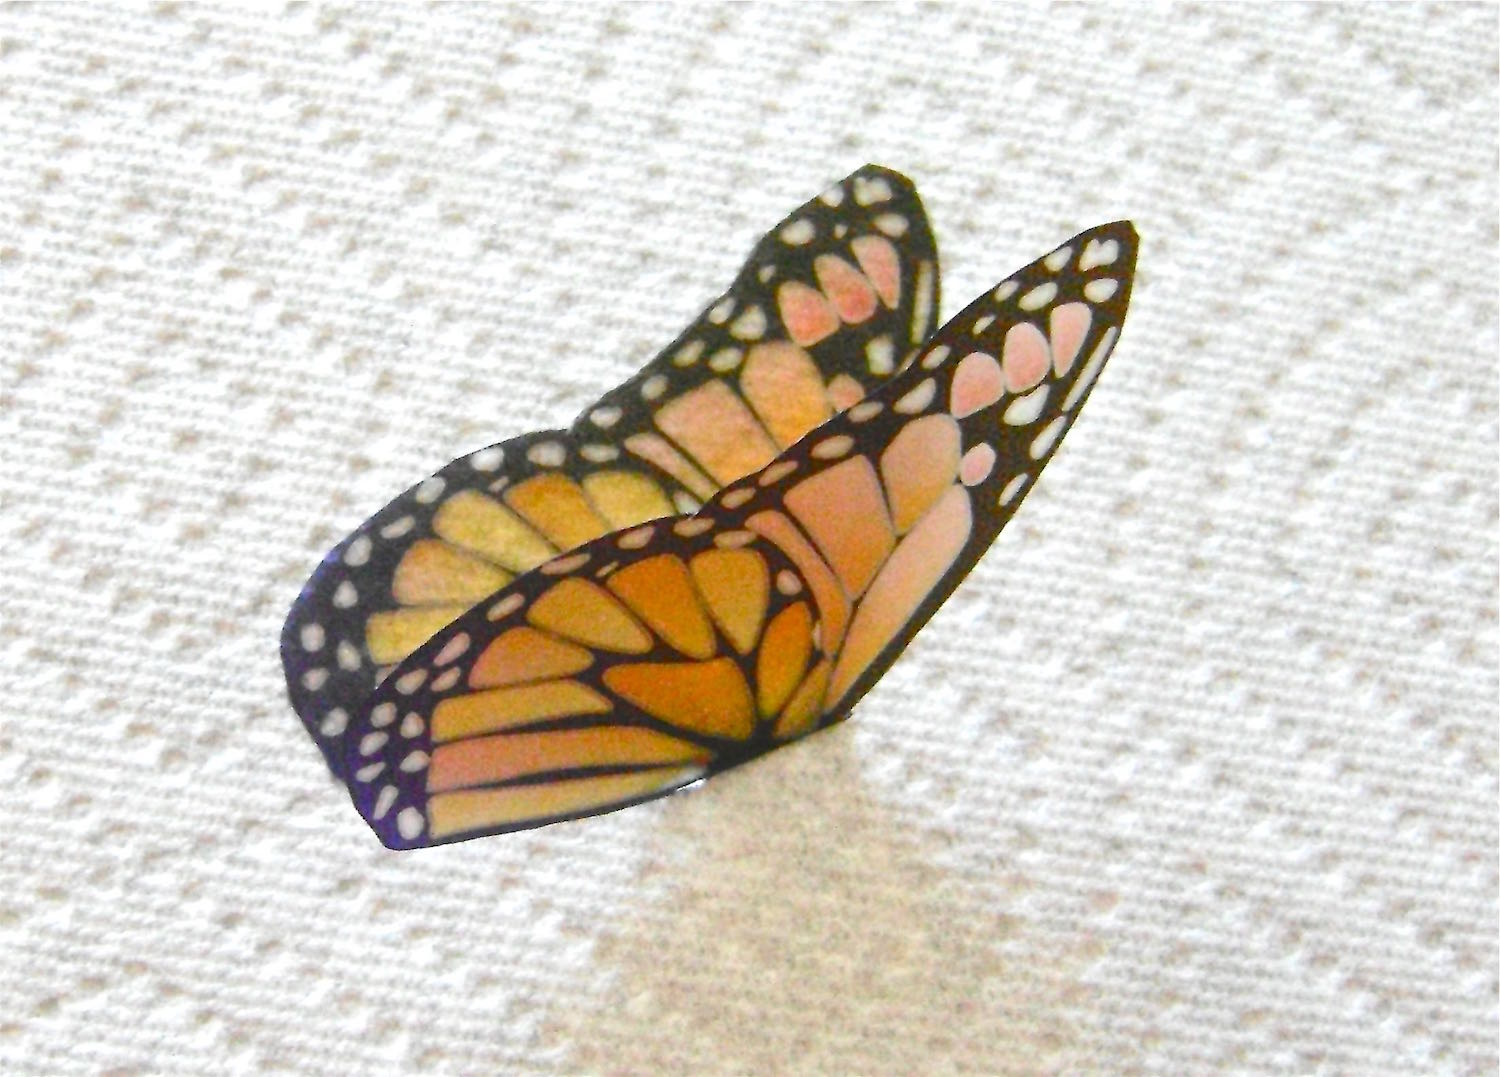 step 5 - Use small scissors to cut out the shape. Match up the cut wings and form a crease in the center of the butterfly.